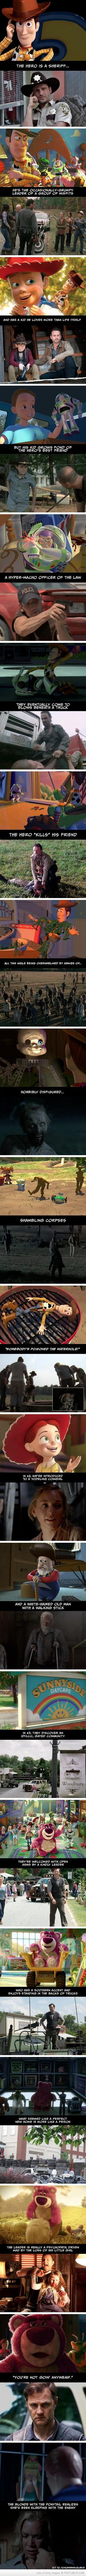 Real Proof That The Walking Dead And Toy Story Have The Exact Same Plot